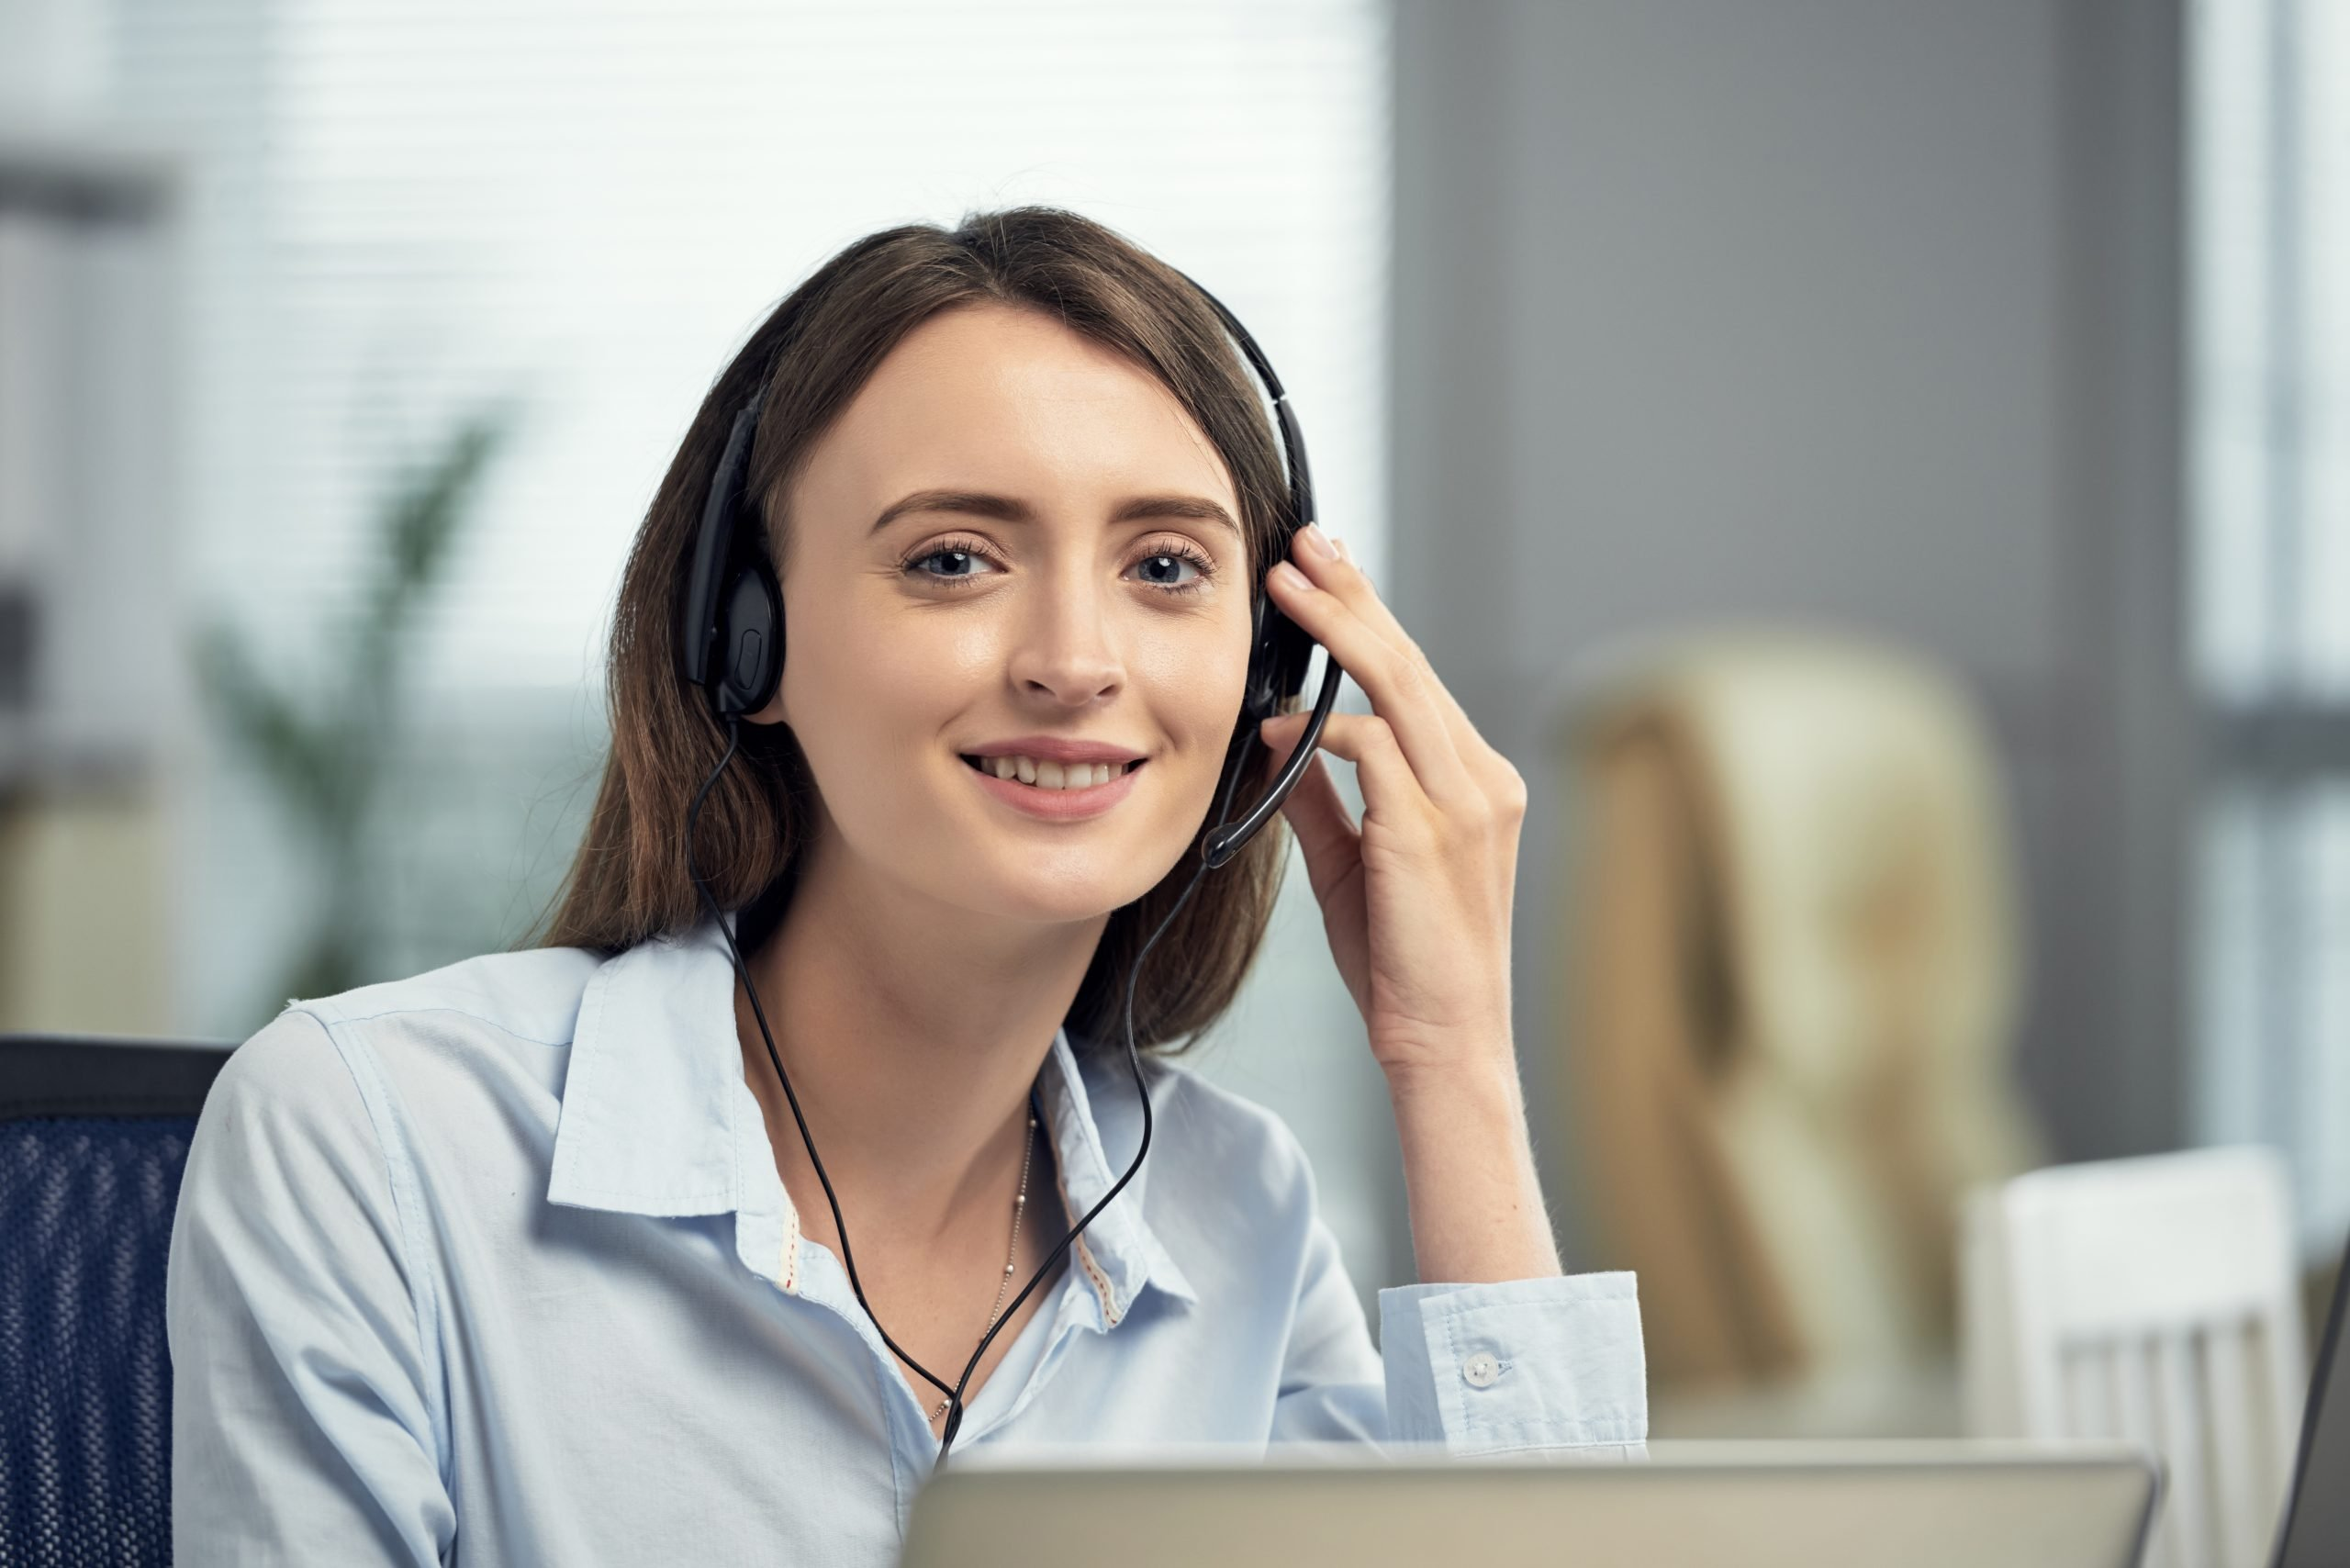 Telecoms for business - person smiling with headset on